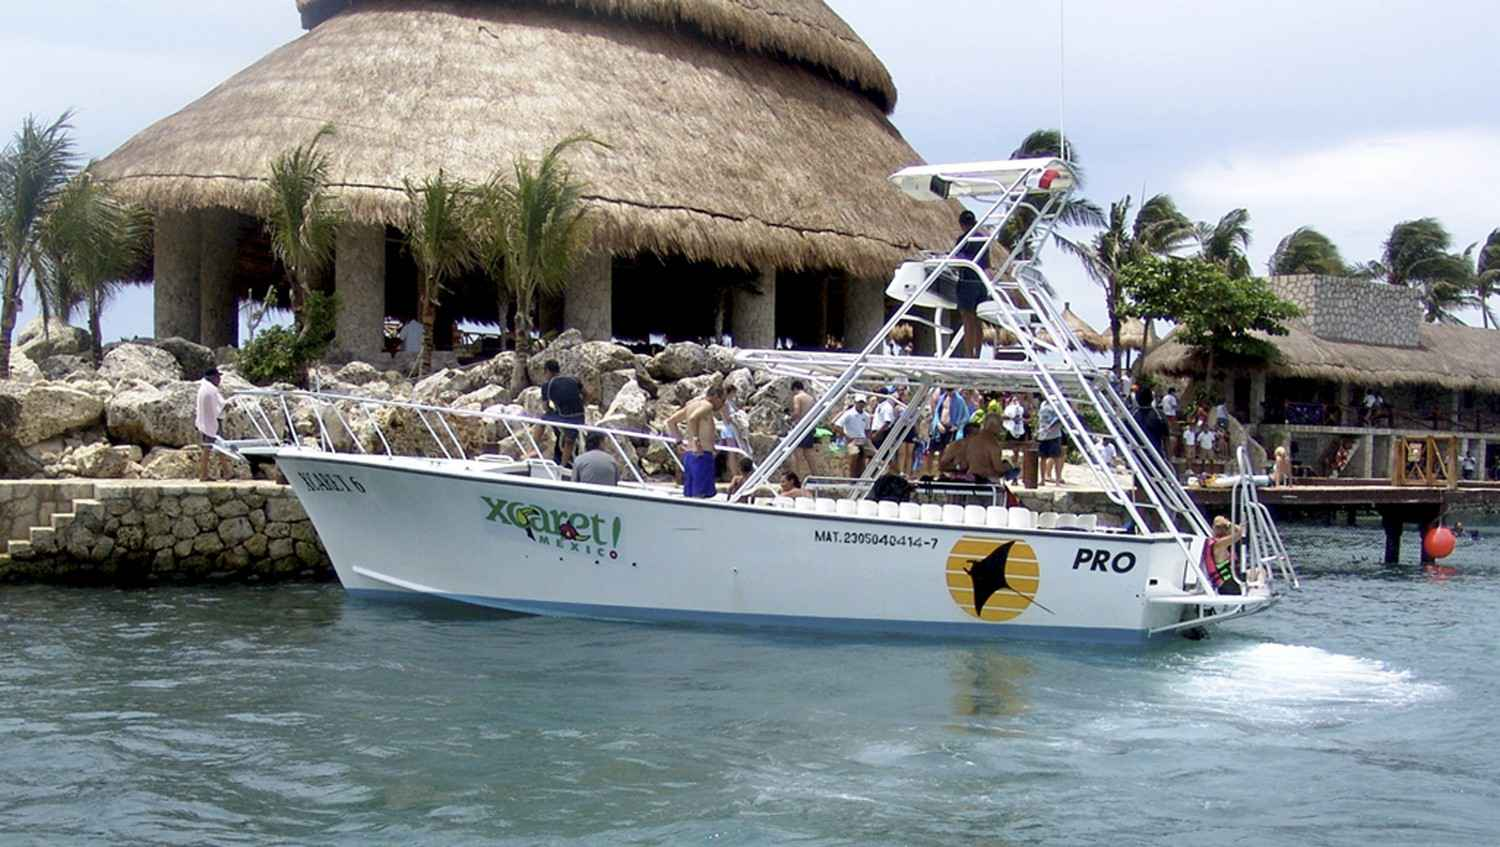 A scuba diving and snorkeling boat trolling past the shore of Xcaret.